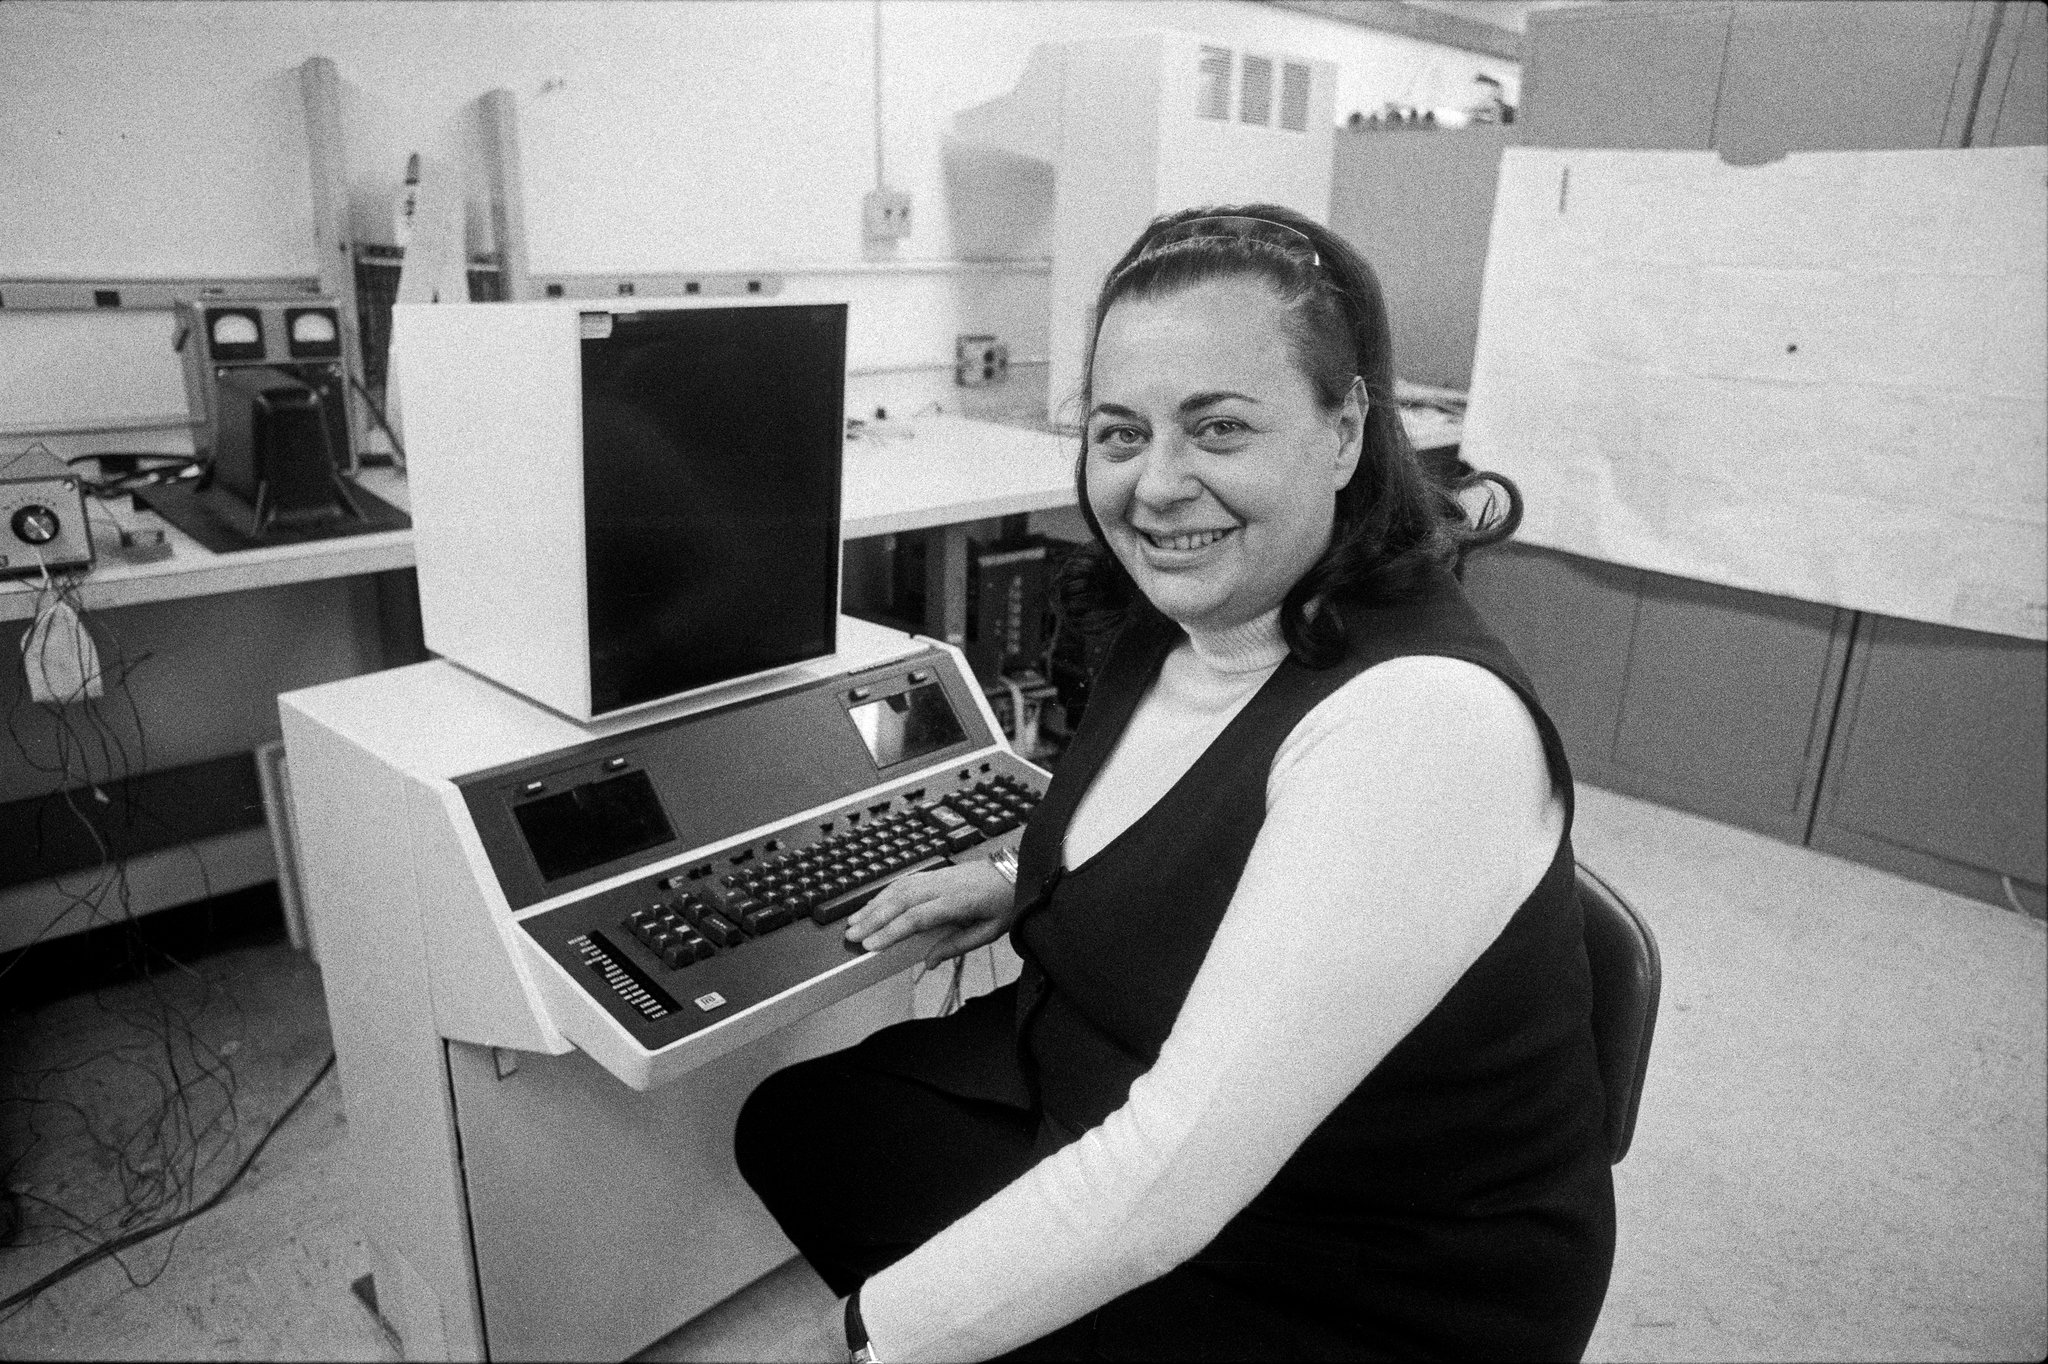 Evelyn Berezin in 1976, when she was president of the Redactron Corporation, with Data Secretary, the first computerized word processor, which she designed and marketed.CreditBarton Silverman/The New York Times